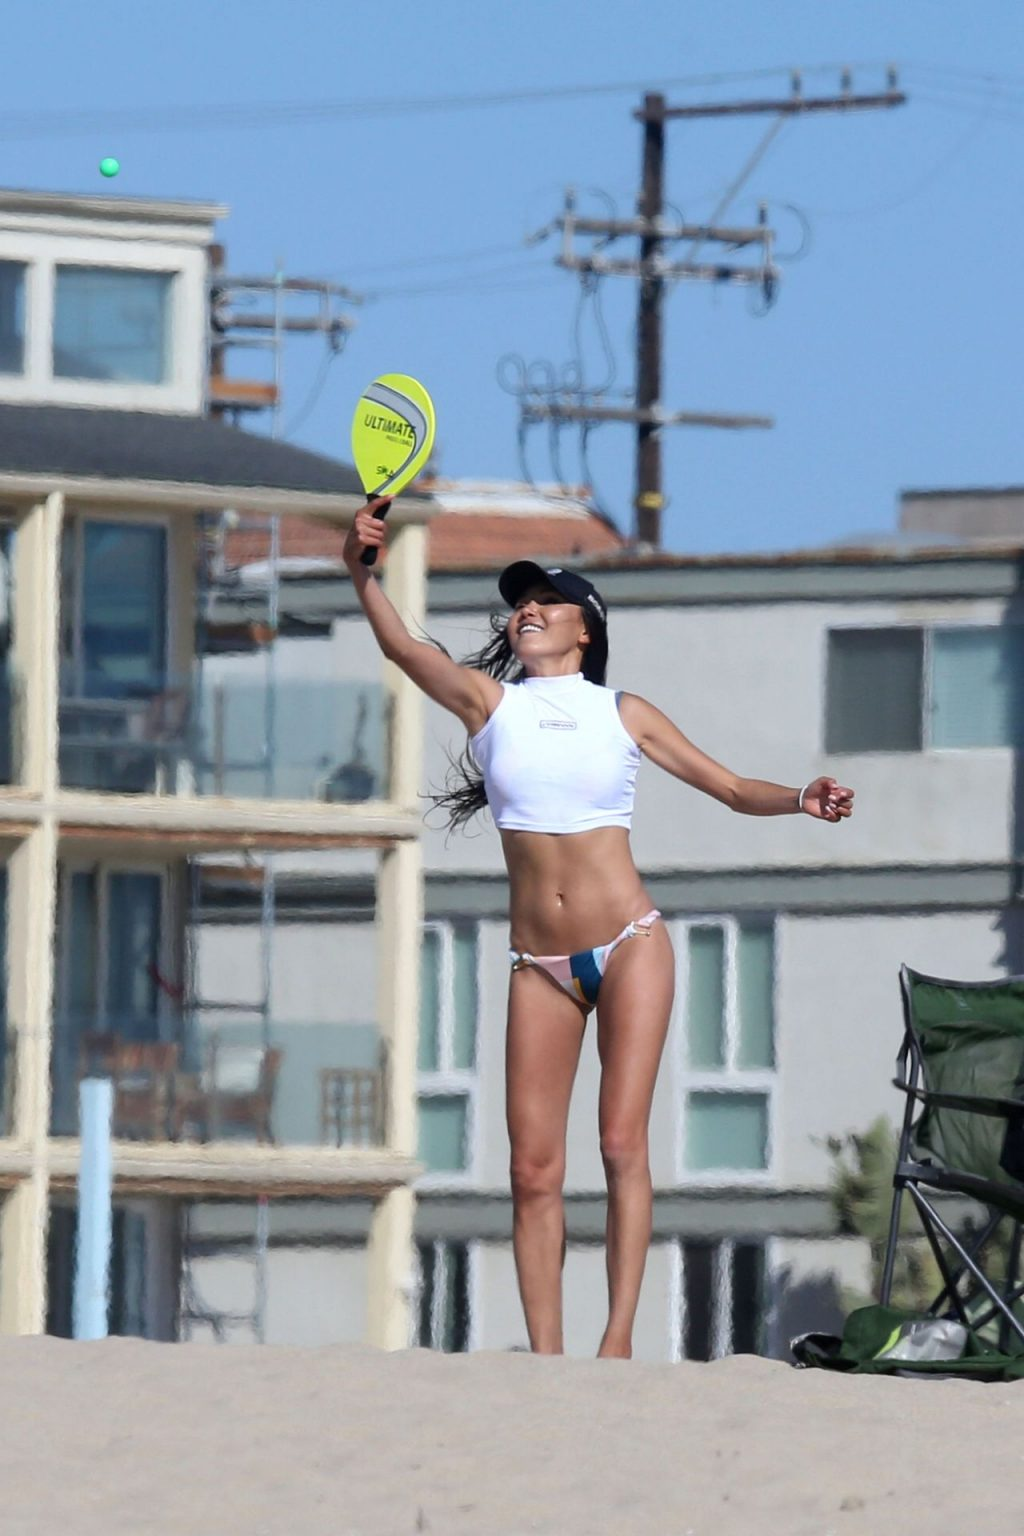 Dylan McDermott Enjoys A Beach Day With Soo Yeon Lee In Los Angeles (33 Photos)